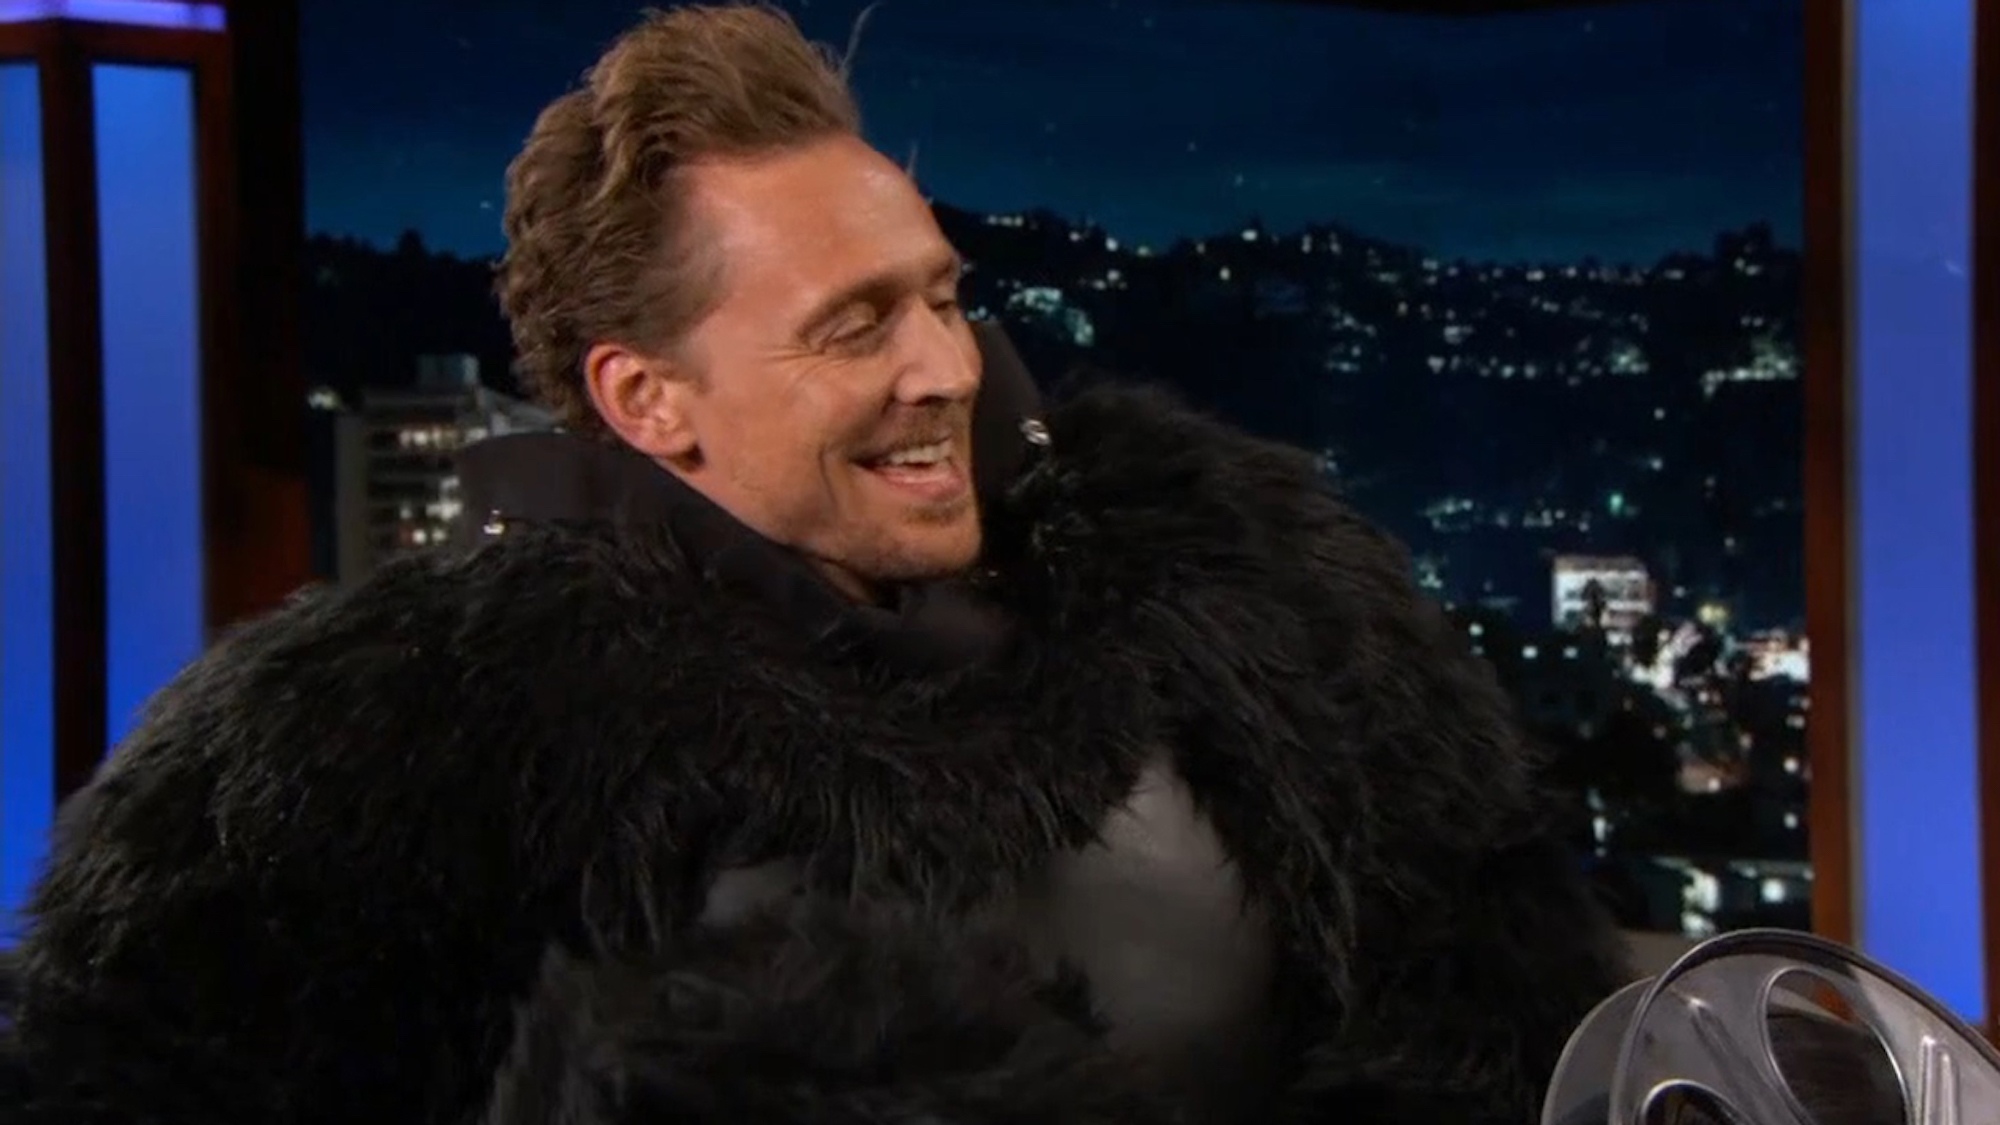 Tom Hiddleston gets into the 'Kong' spirit. (Pic: ABC / YouTube)